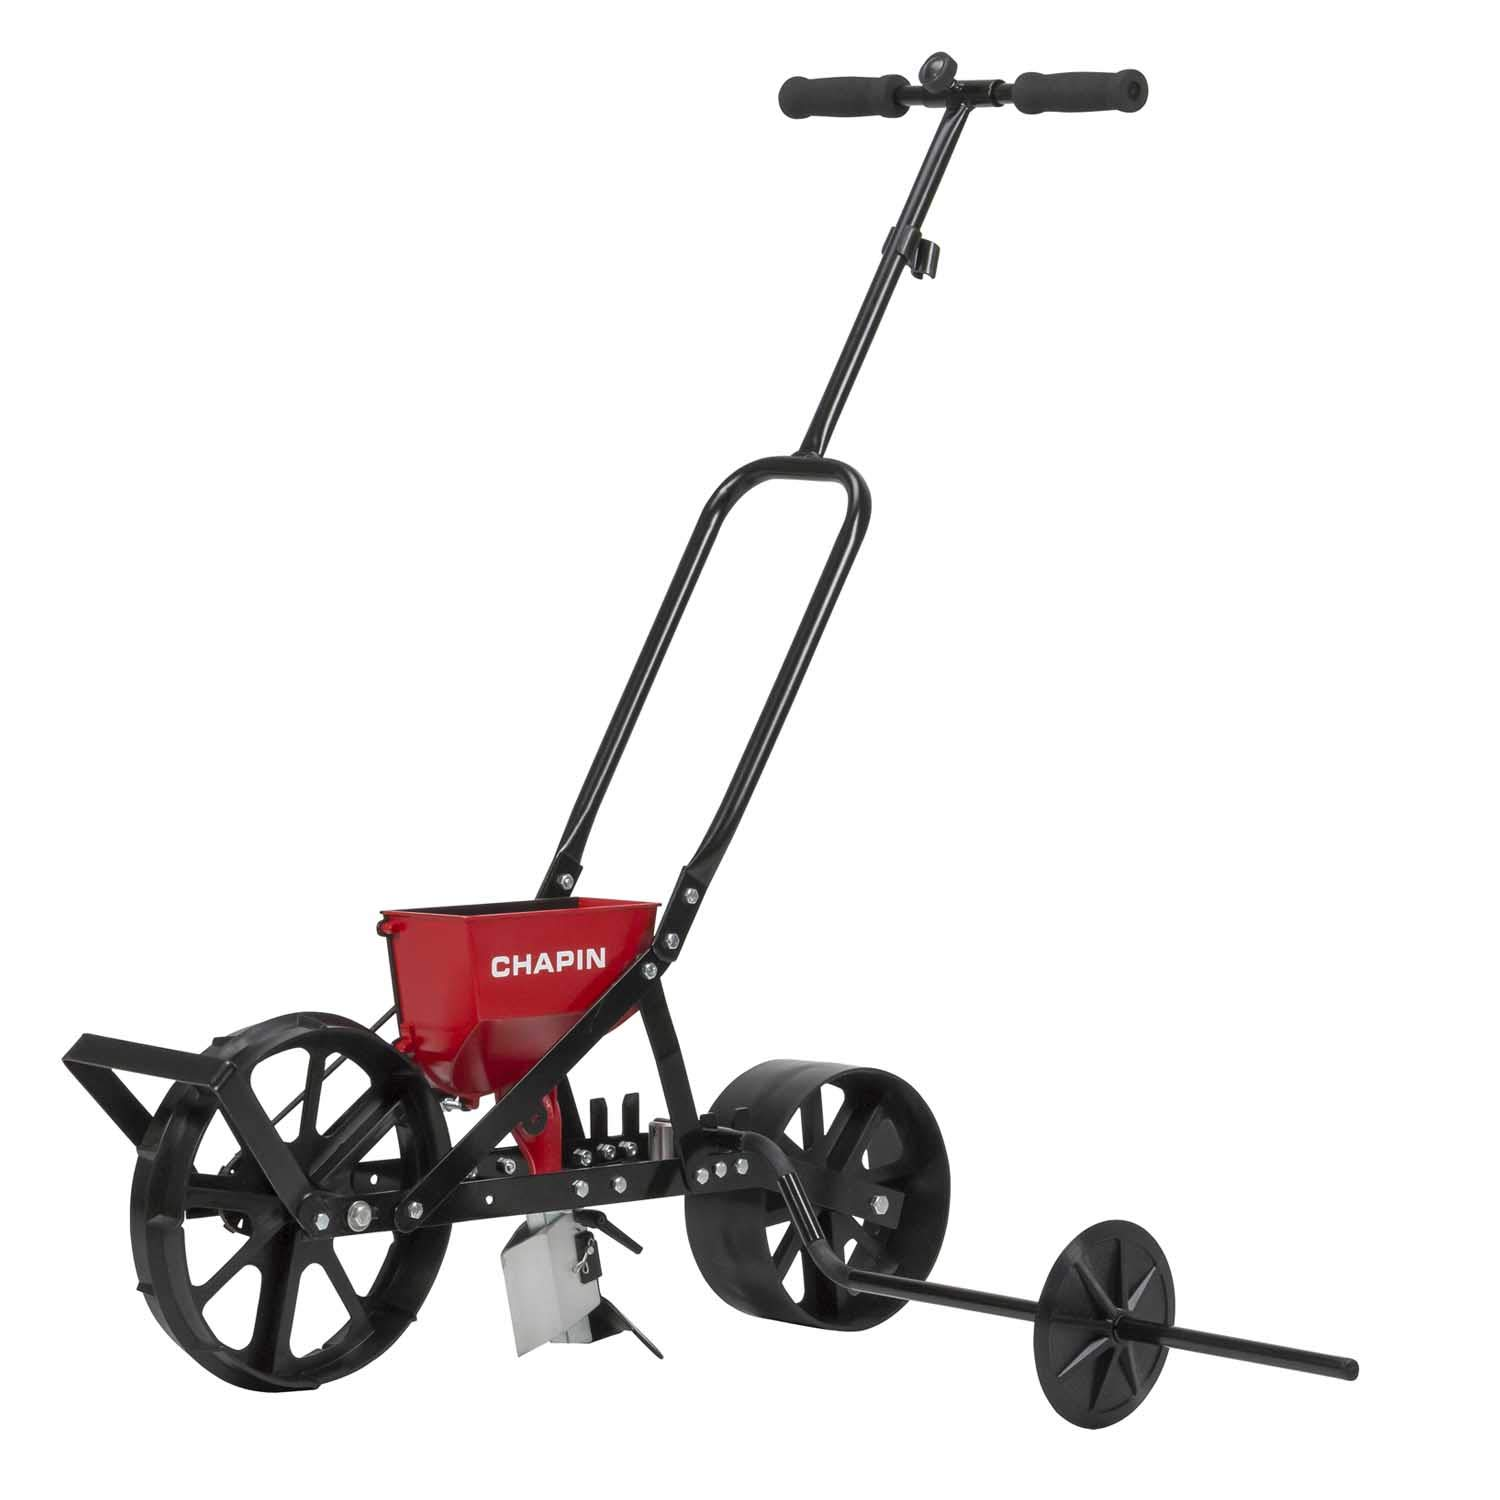 Chapin 8701B Garden Push seeder With 6 Seed Plates for Up to 20 Varieties Of Seeds, (1 Garden Seeder/Package) by Chapin International (Image #1)